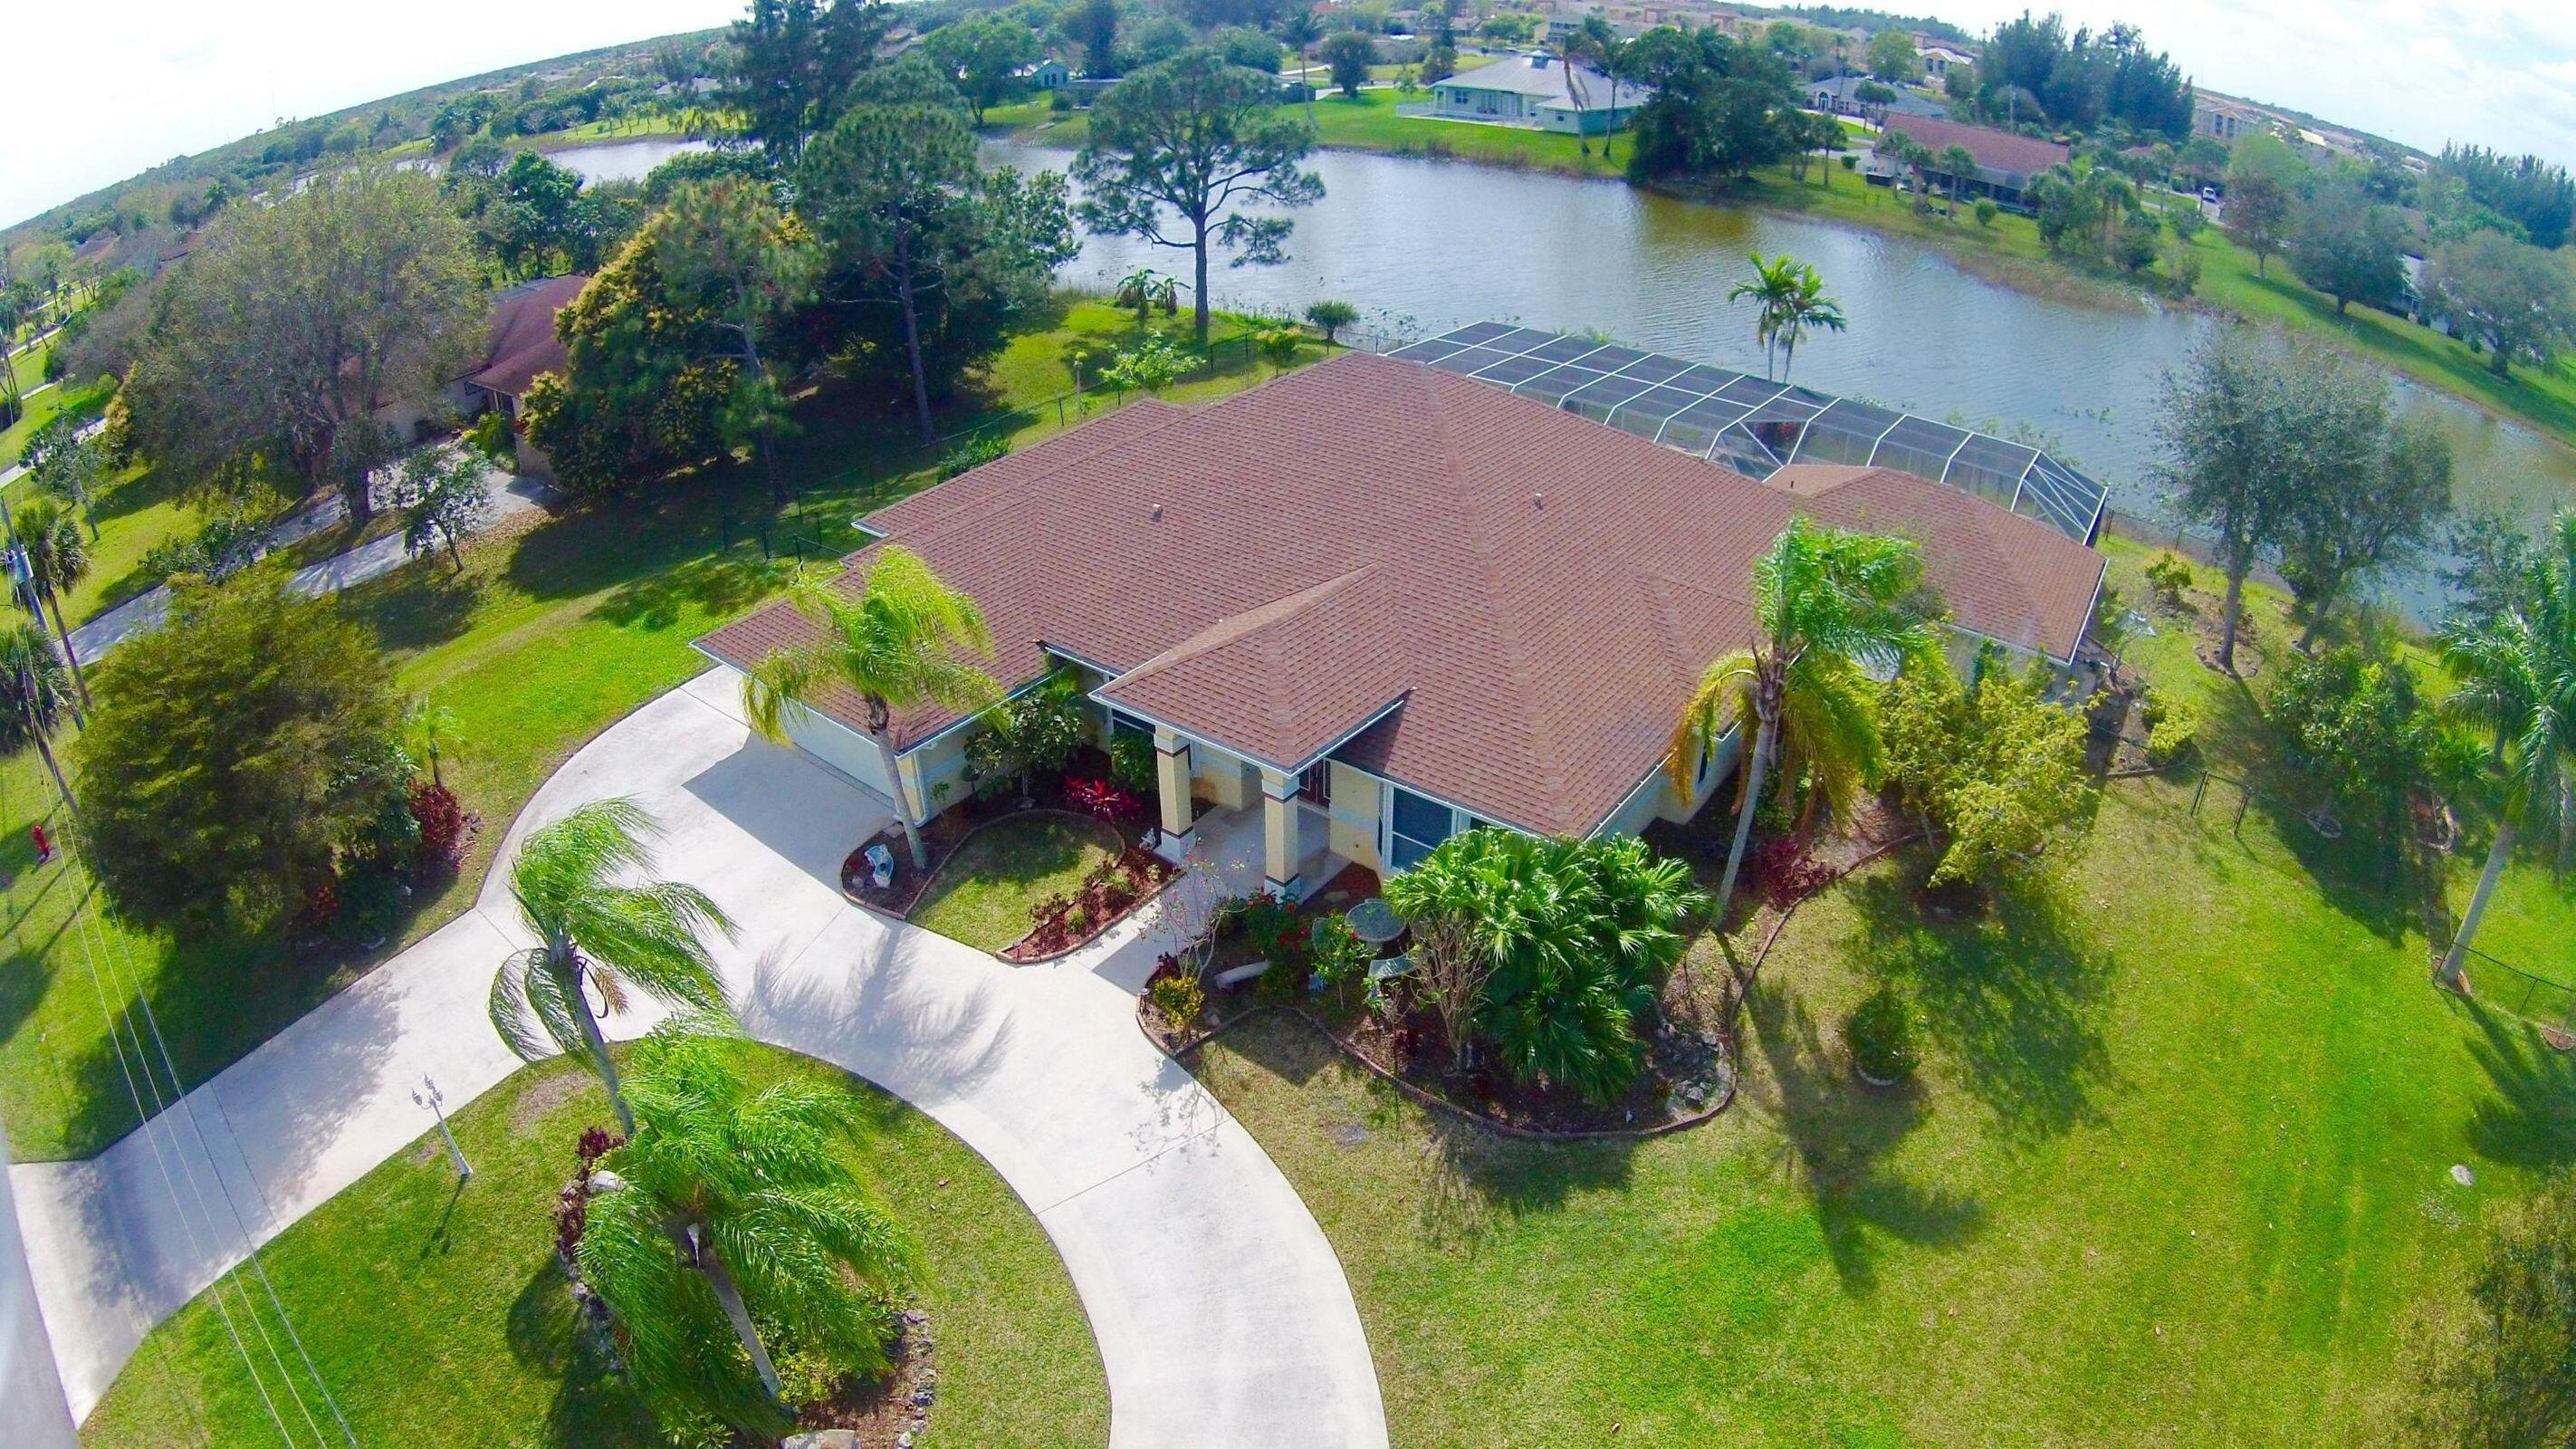 693  Whippoorwill Terrace  For Sale 10735802, FL